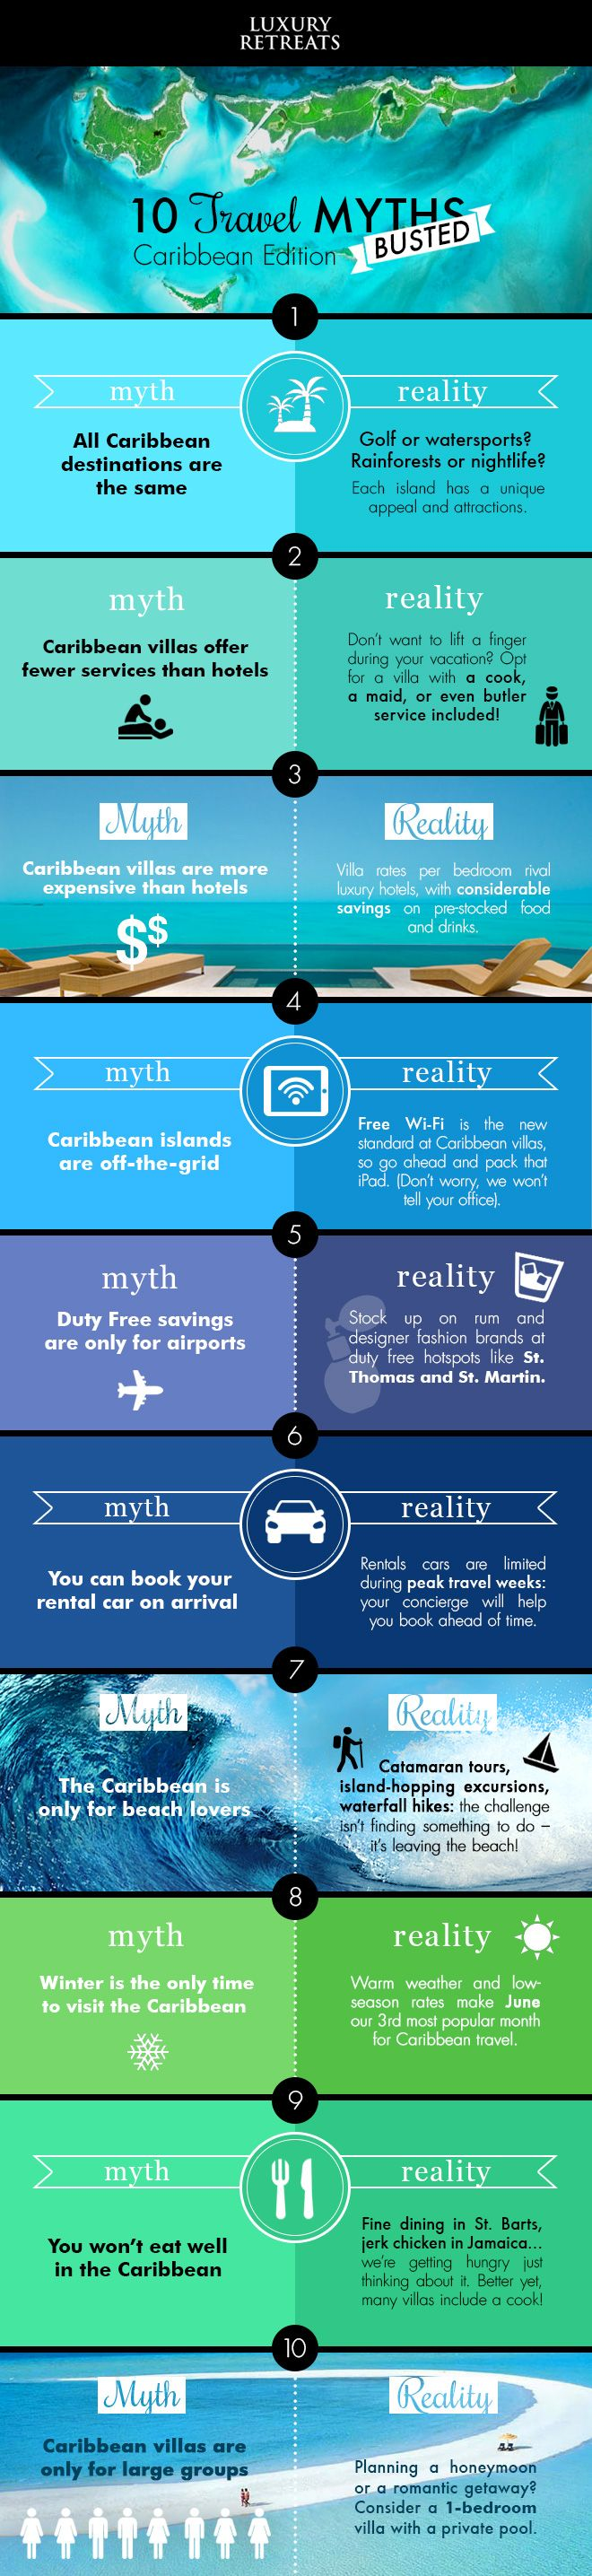 10 Caribbean Travel Myths - Busted: Don't believe everything you hear about Caribbean travel! Think you can separate fact from fiction? Read on as we countdown (and debunk) 10 common travel myths about Caribbean villa vacations in our latest #infographic.